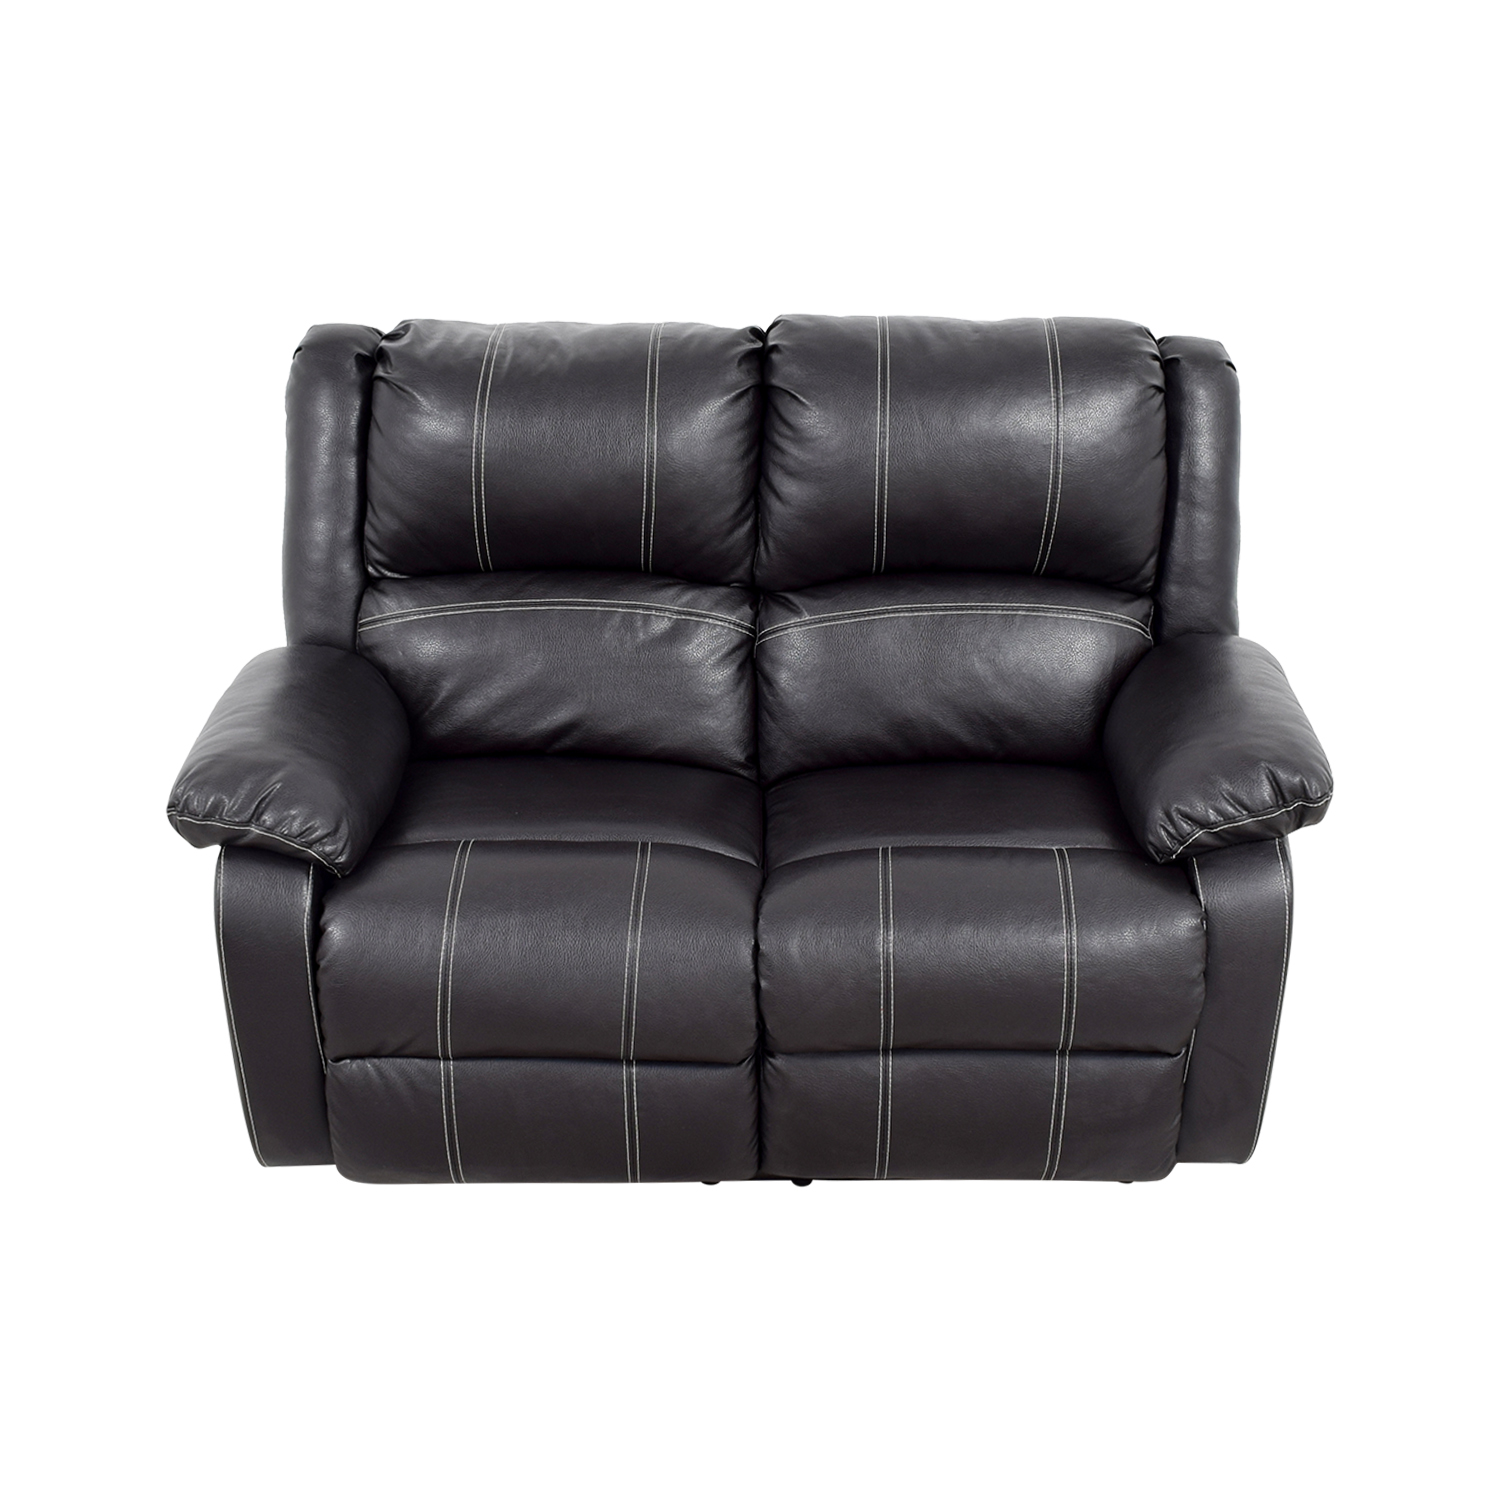 Acme Acme Black Leather Reclining Loveseat on sale